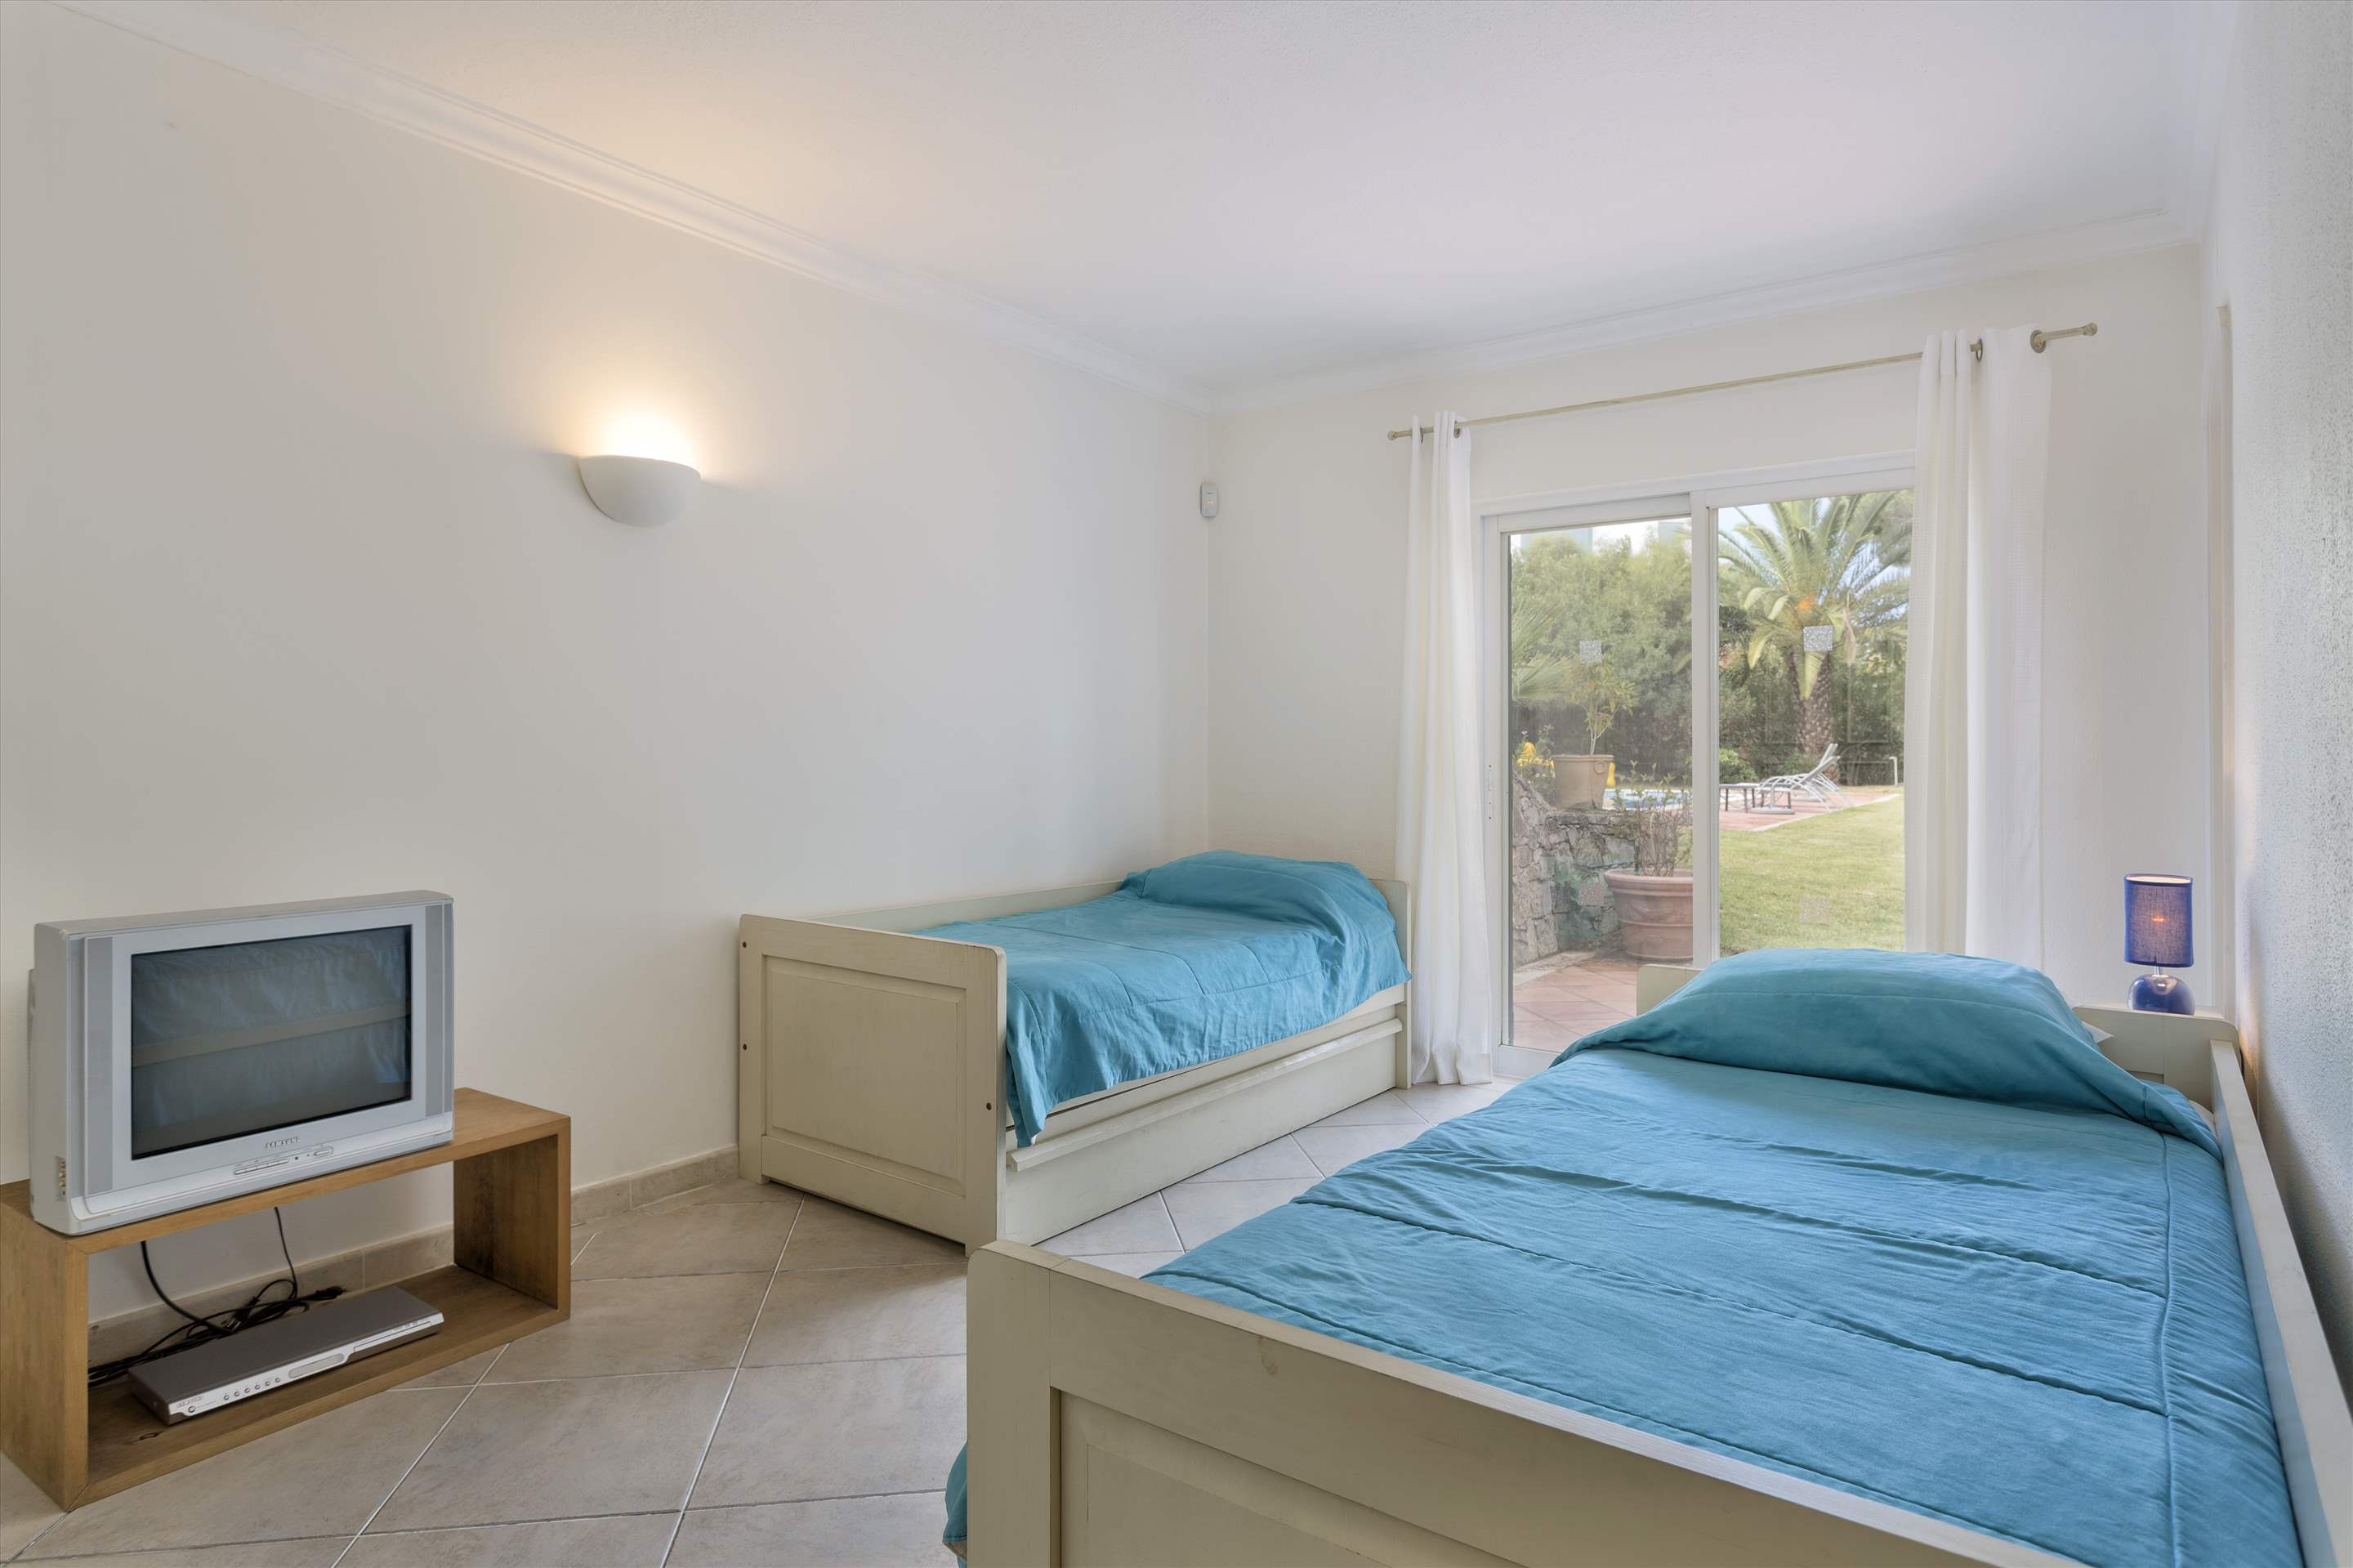 Villa Rosemaria, 5 Bedrooms, 5 bedroom villa in Vale do Lobo, Algarve Photo #15